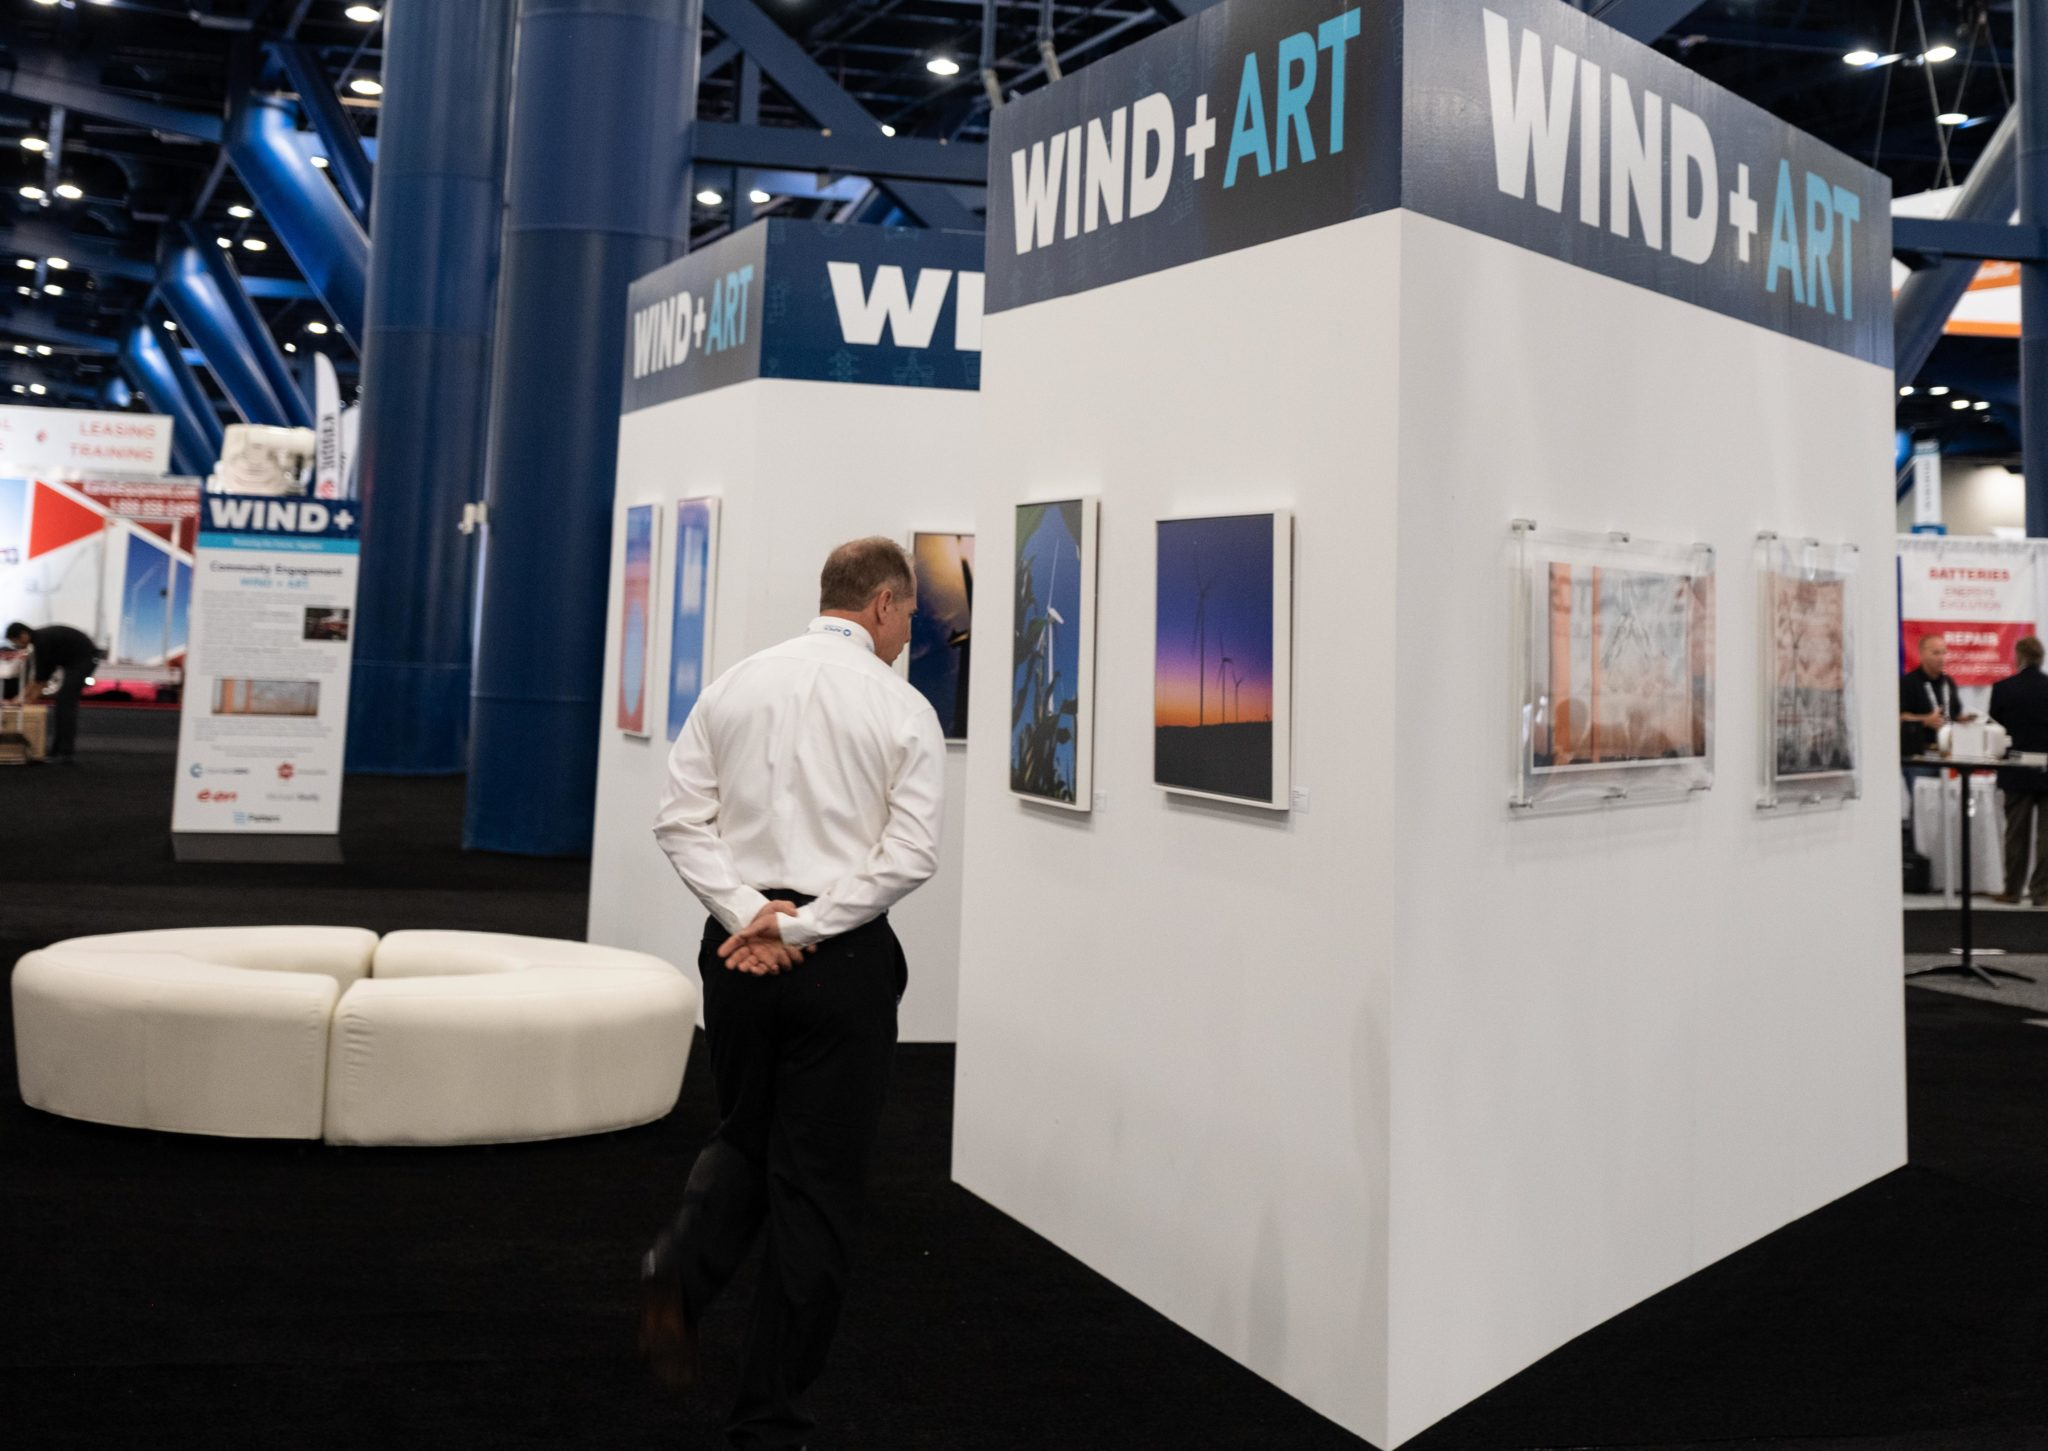 A visitor checks out Foto Relevance's booth at the Windpower Conference. The convention underwrote the Houston gallery's booth in order to showcase artists responding to wind energy. (Photo by Priscilla Dickson)